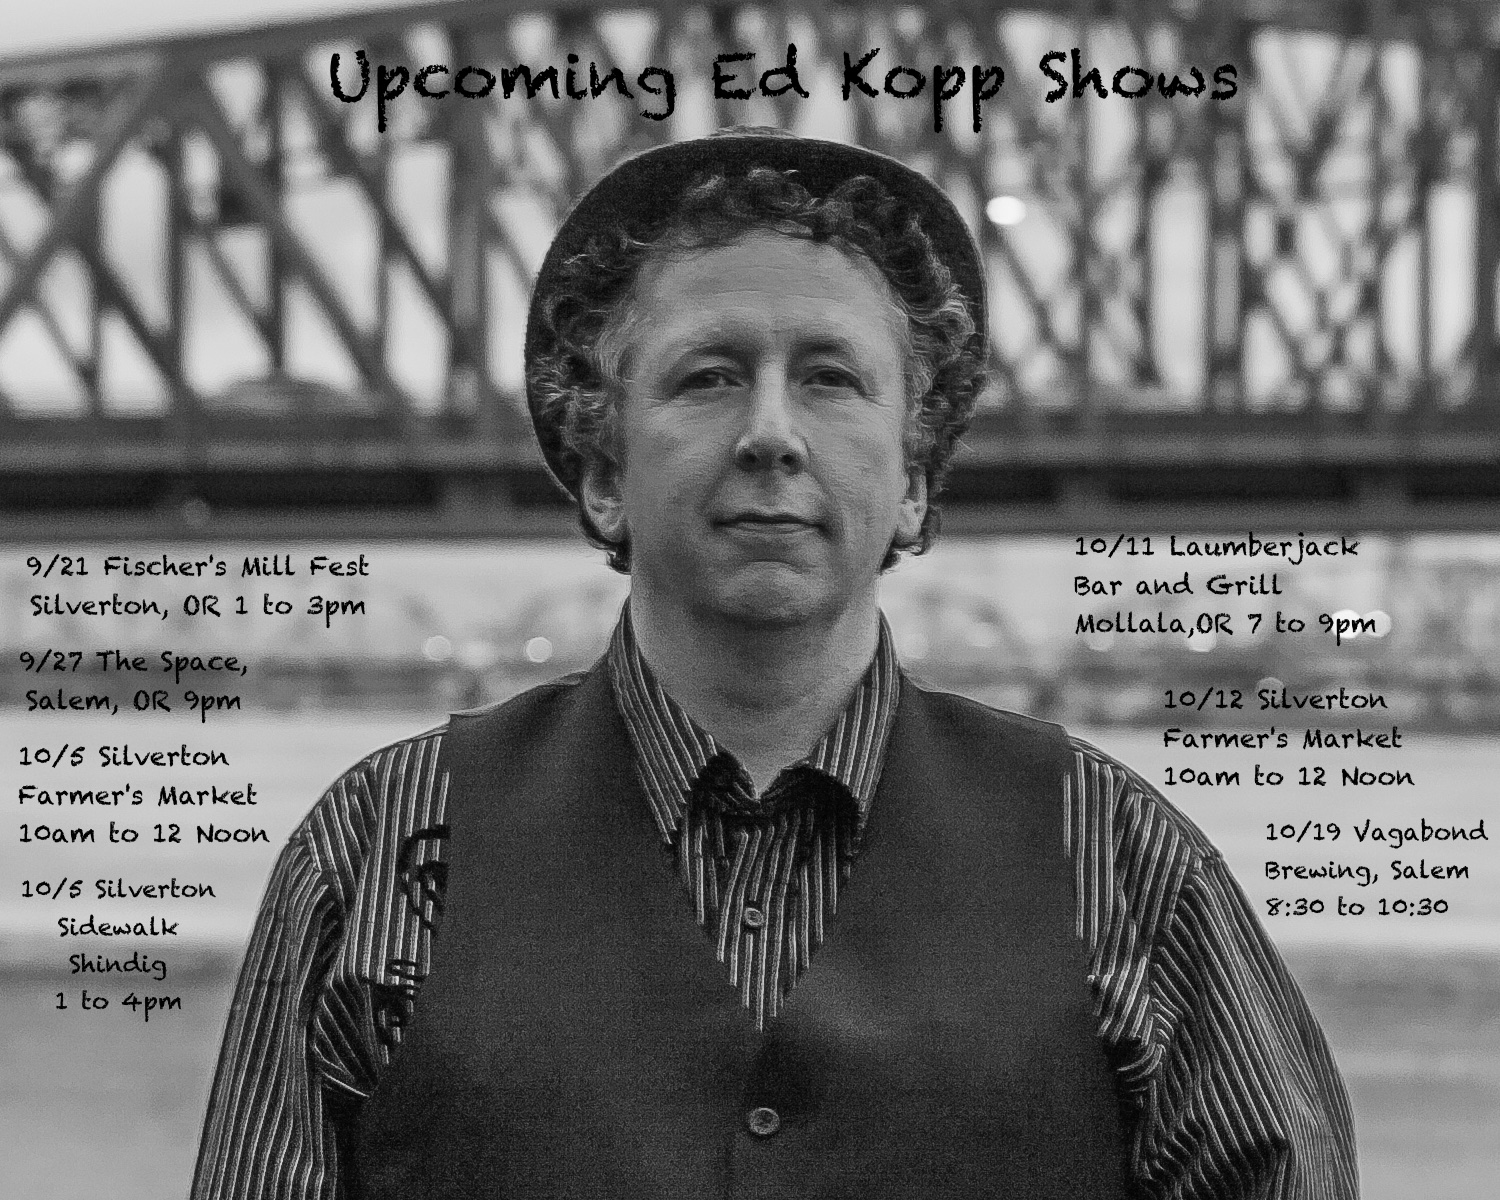 Ed Kopp Upcoming Shows.png